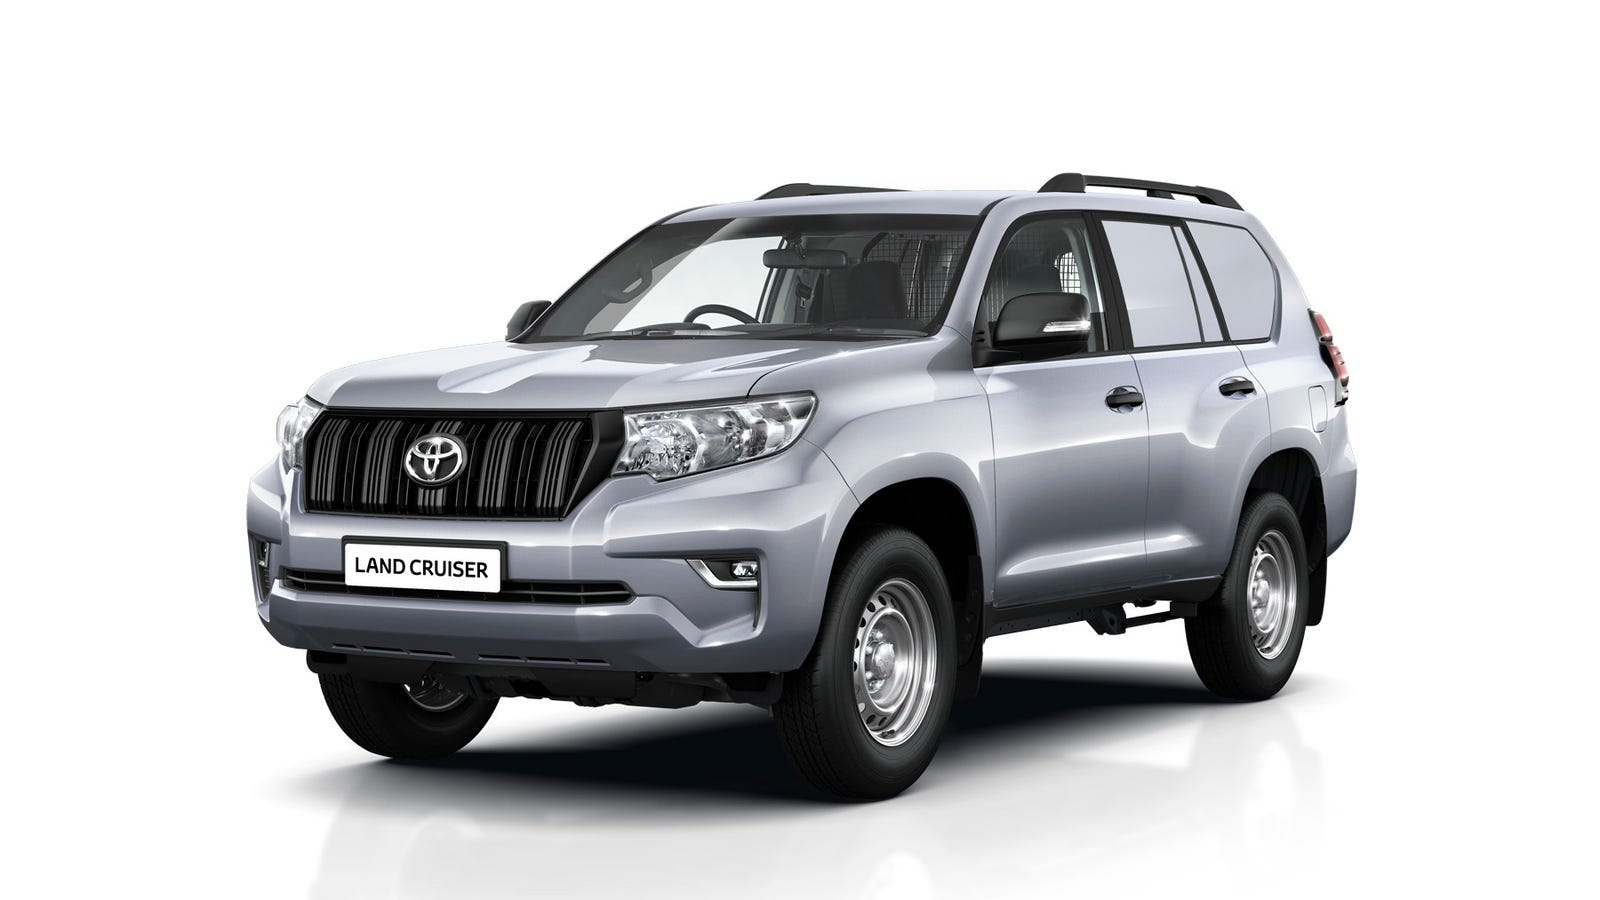 The Toyota Land Cruiser Utility Is The Basic Stripped-Out Diesel Manual SUV  Of Your Dreams